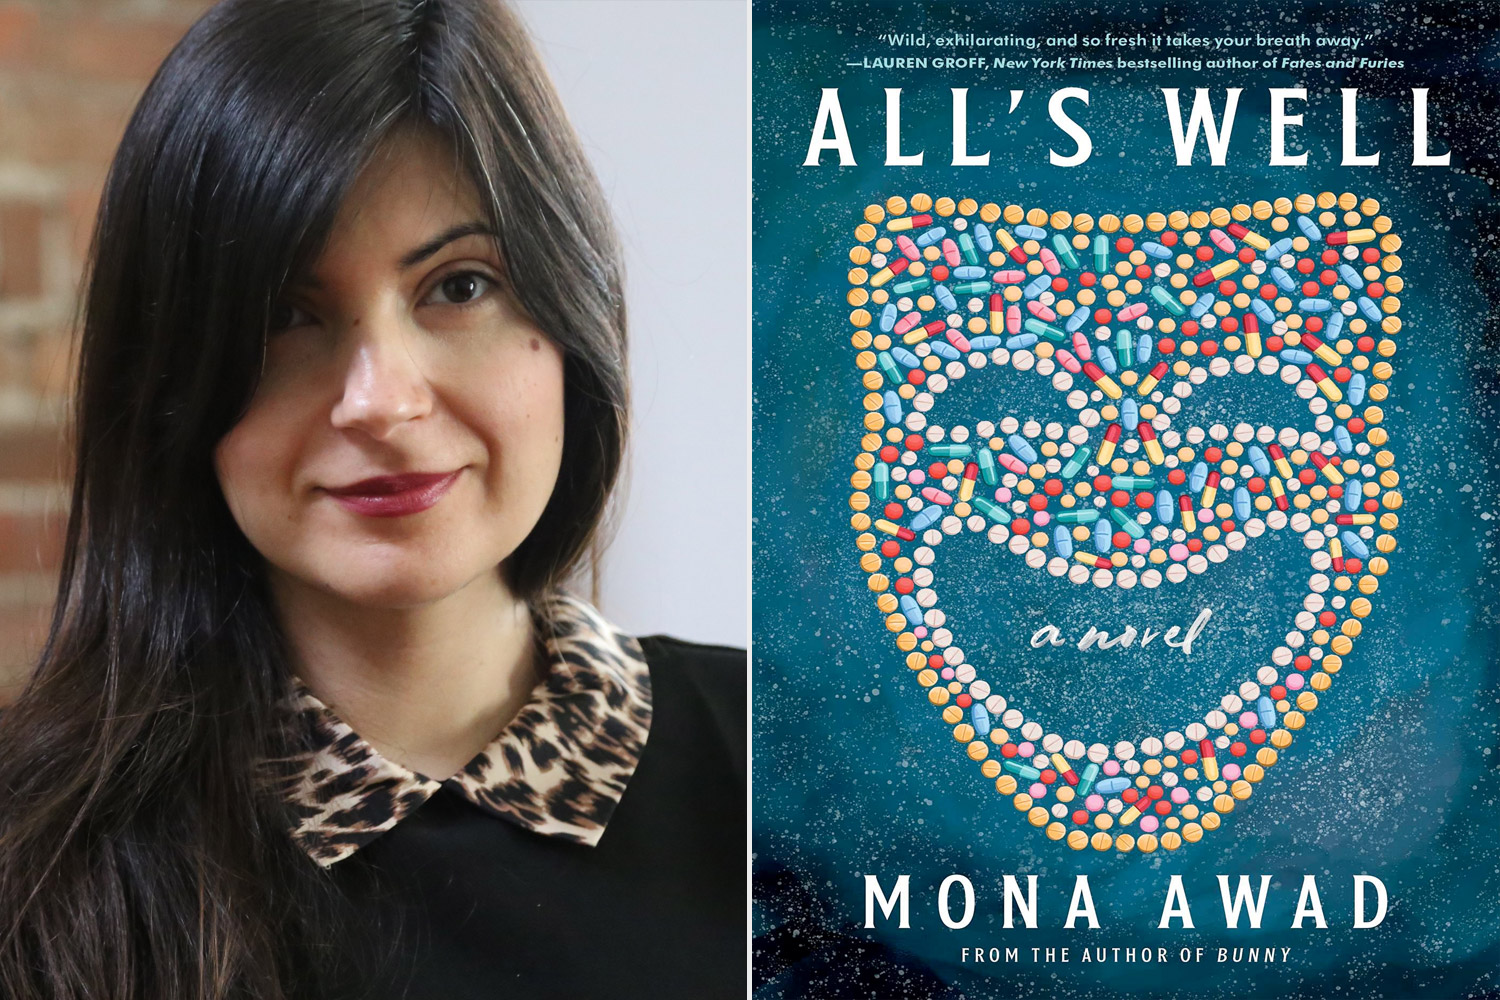 Mona Awad and the cover of her book All's Well